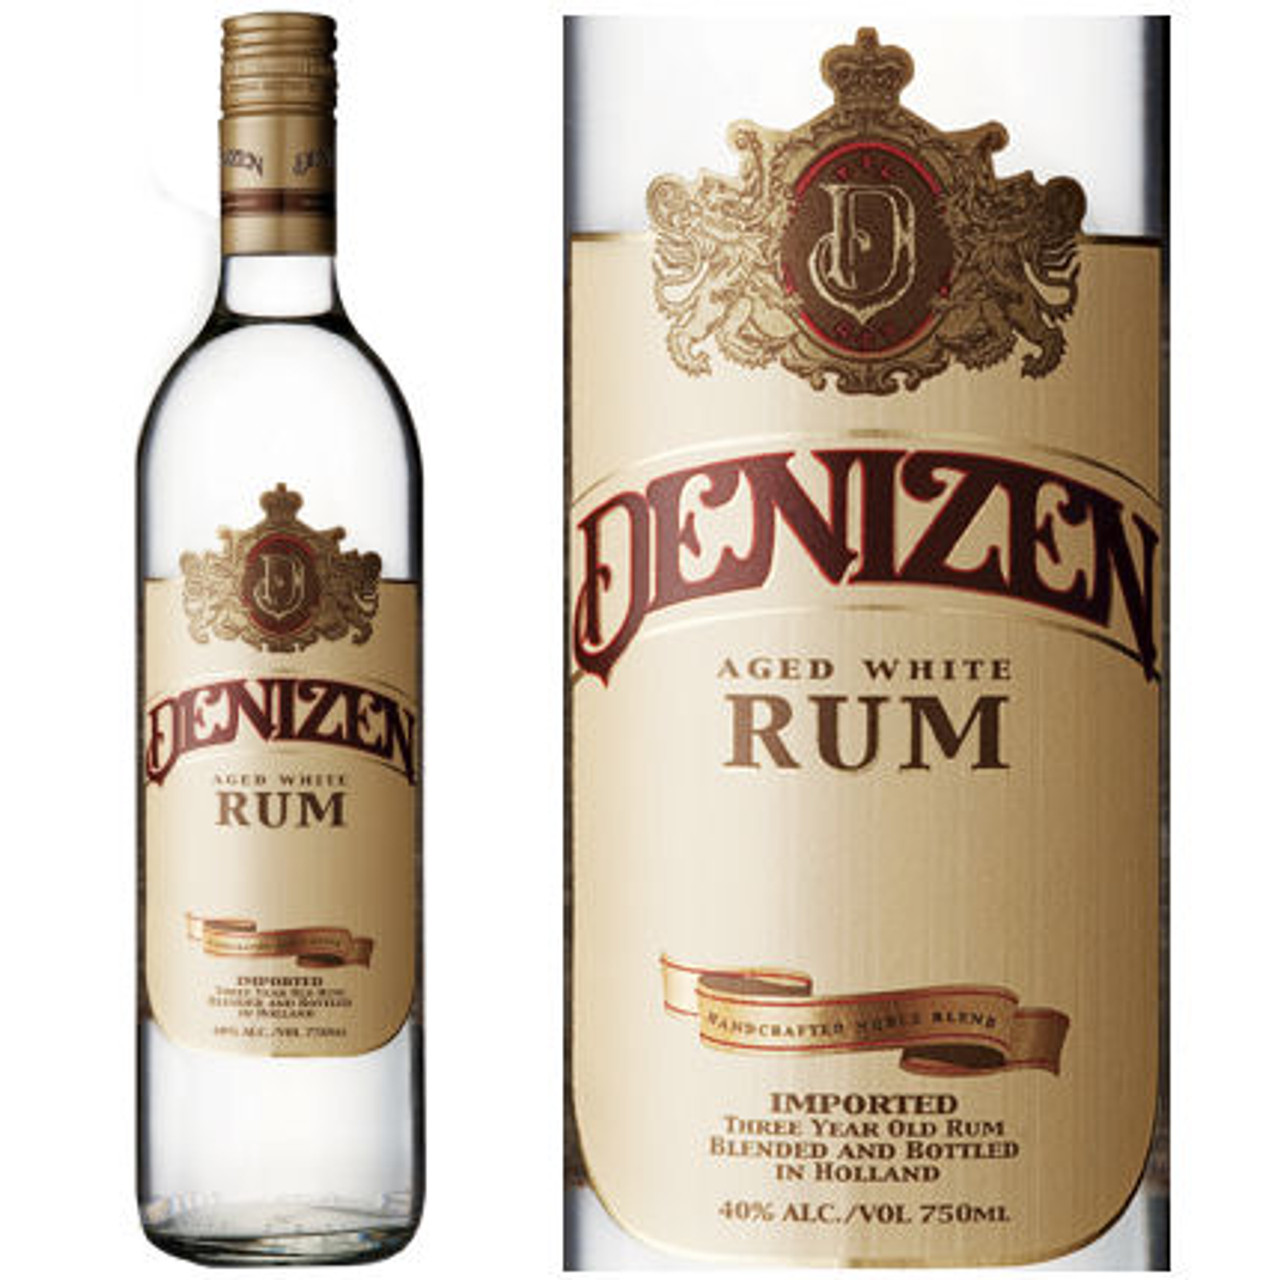 Denizen Aged White Rum 750ml